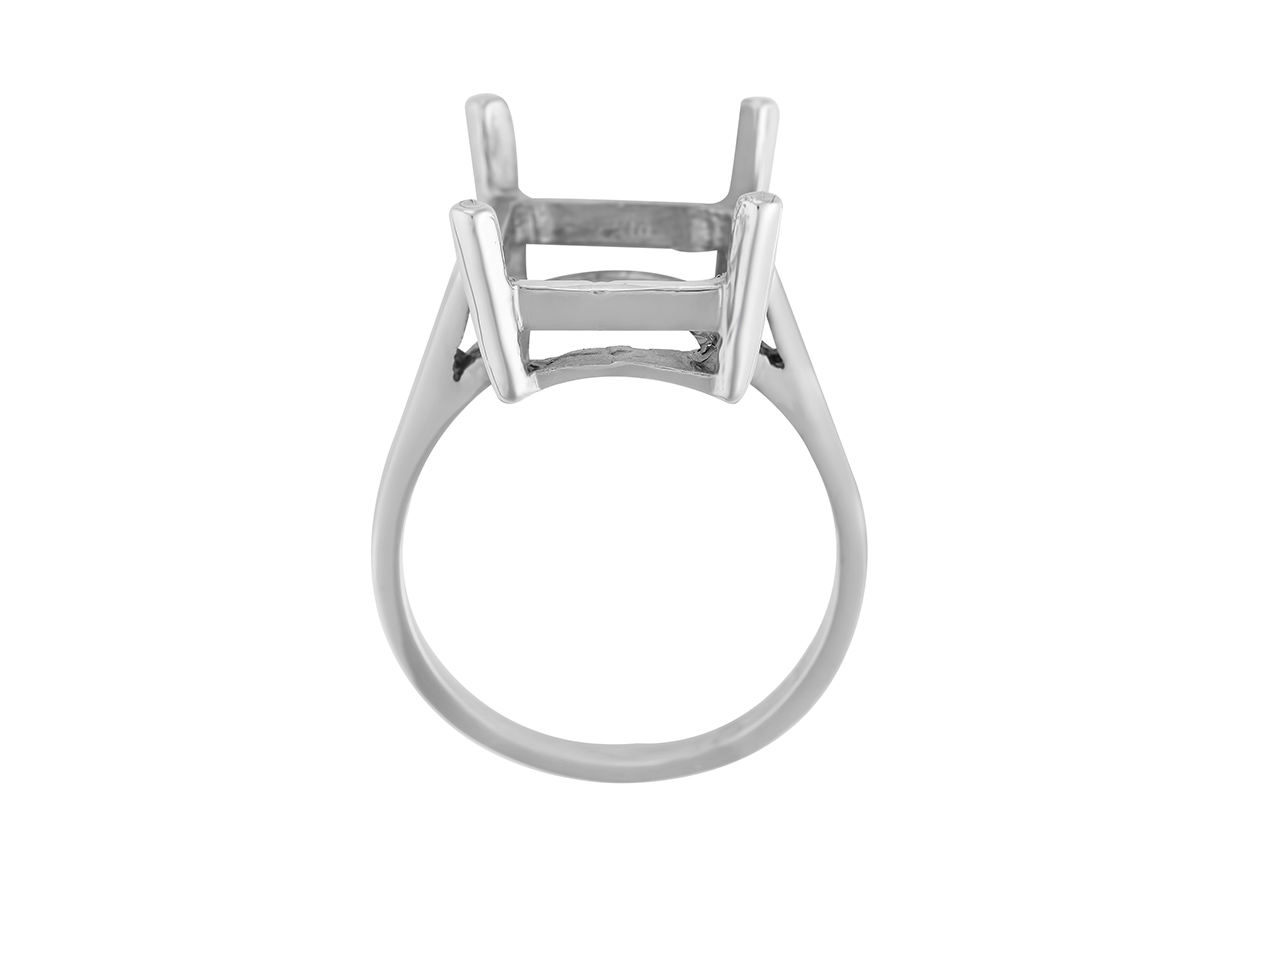 Bague serti 4 griffes pour pierre rectangle 16 x 12 mm, Or gris 800. Réf. 15382